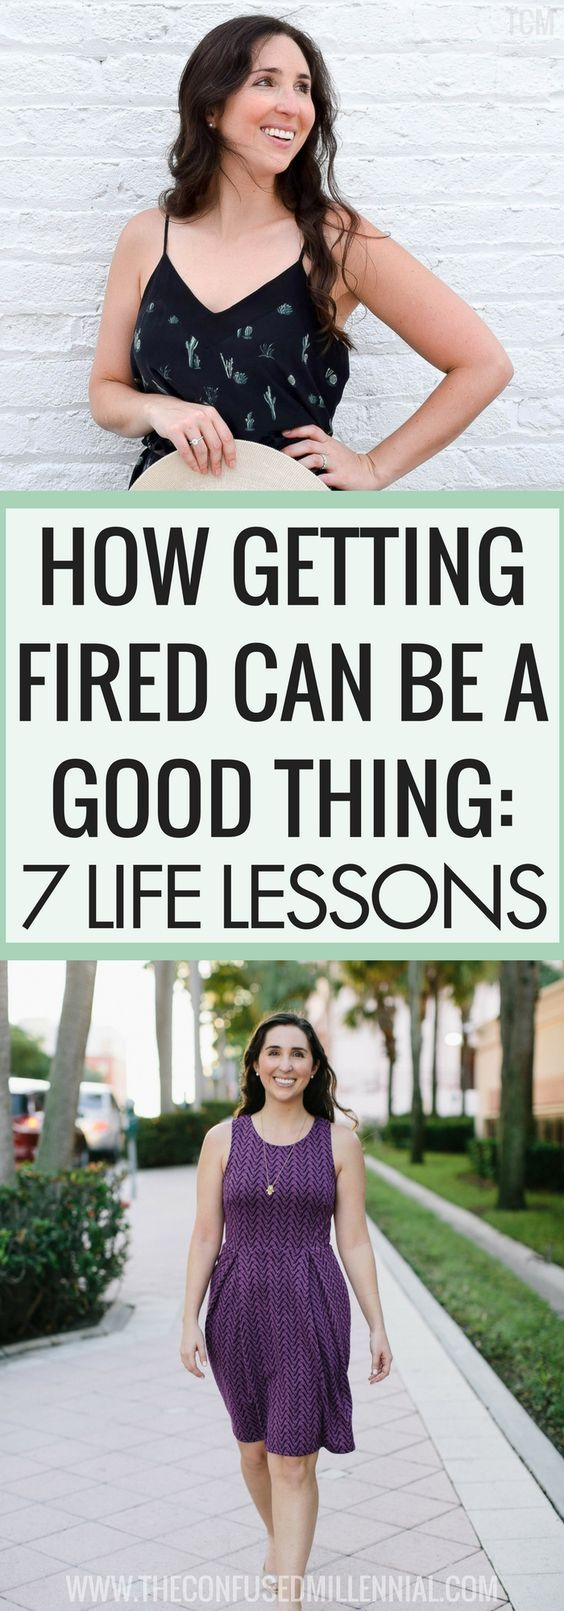 how getting fired can be a good thing 7 lessons - Coping With Getting Fired From A Job